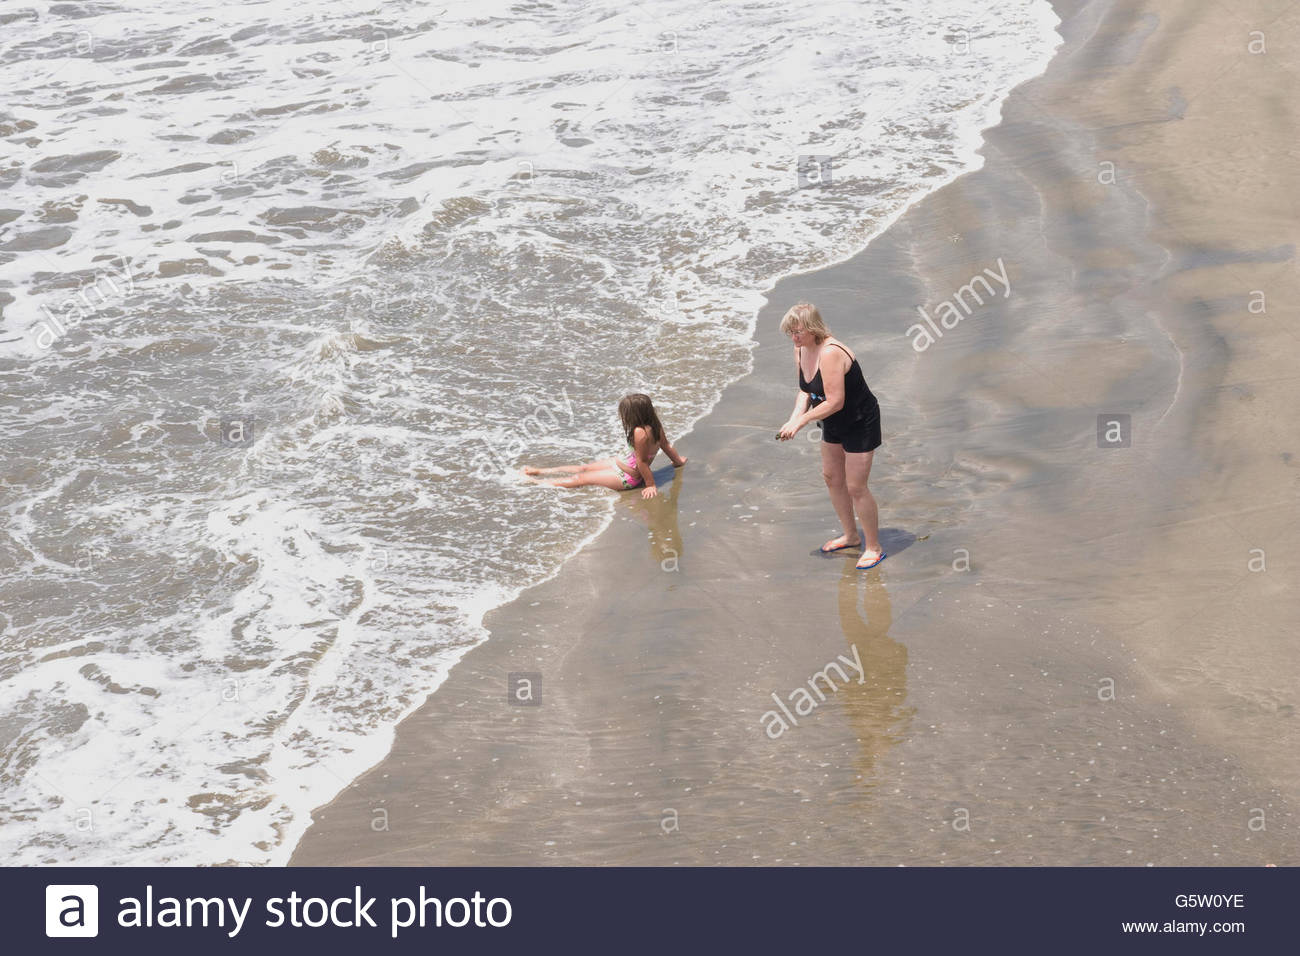 Elevated view of a beach with a woman standing with a girl - Stock Image